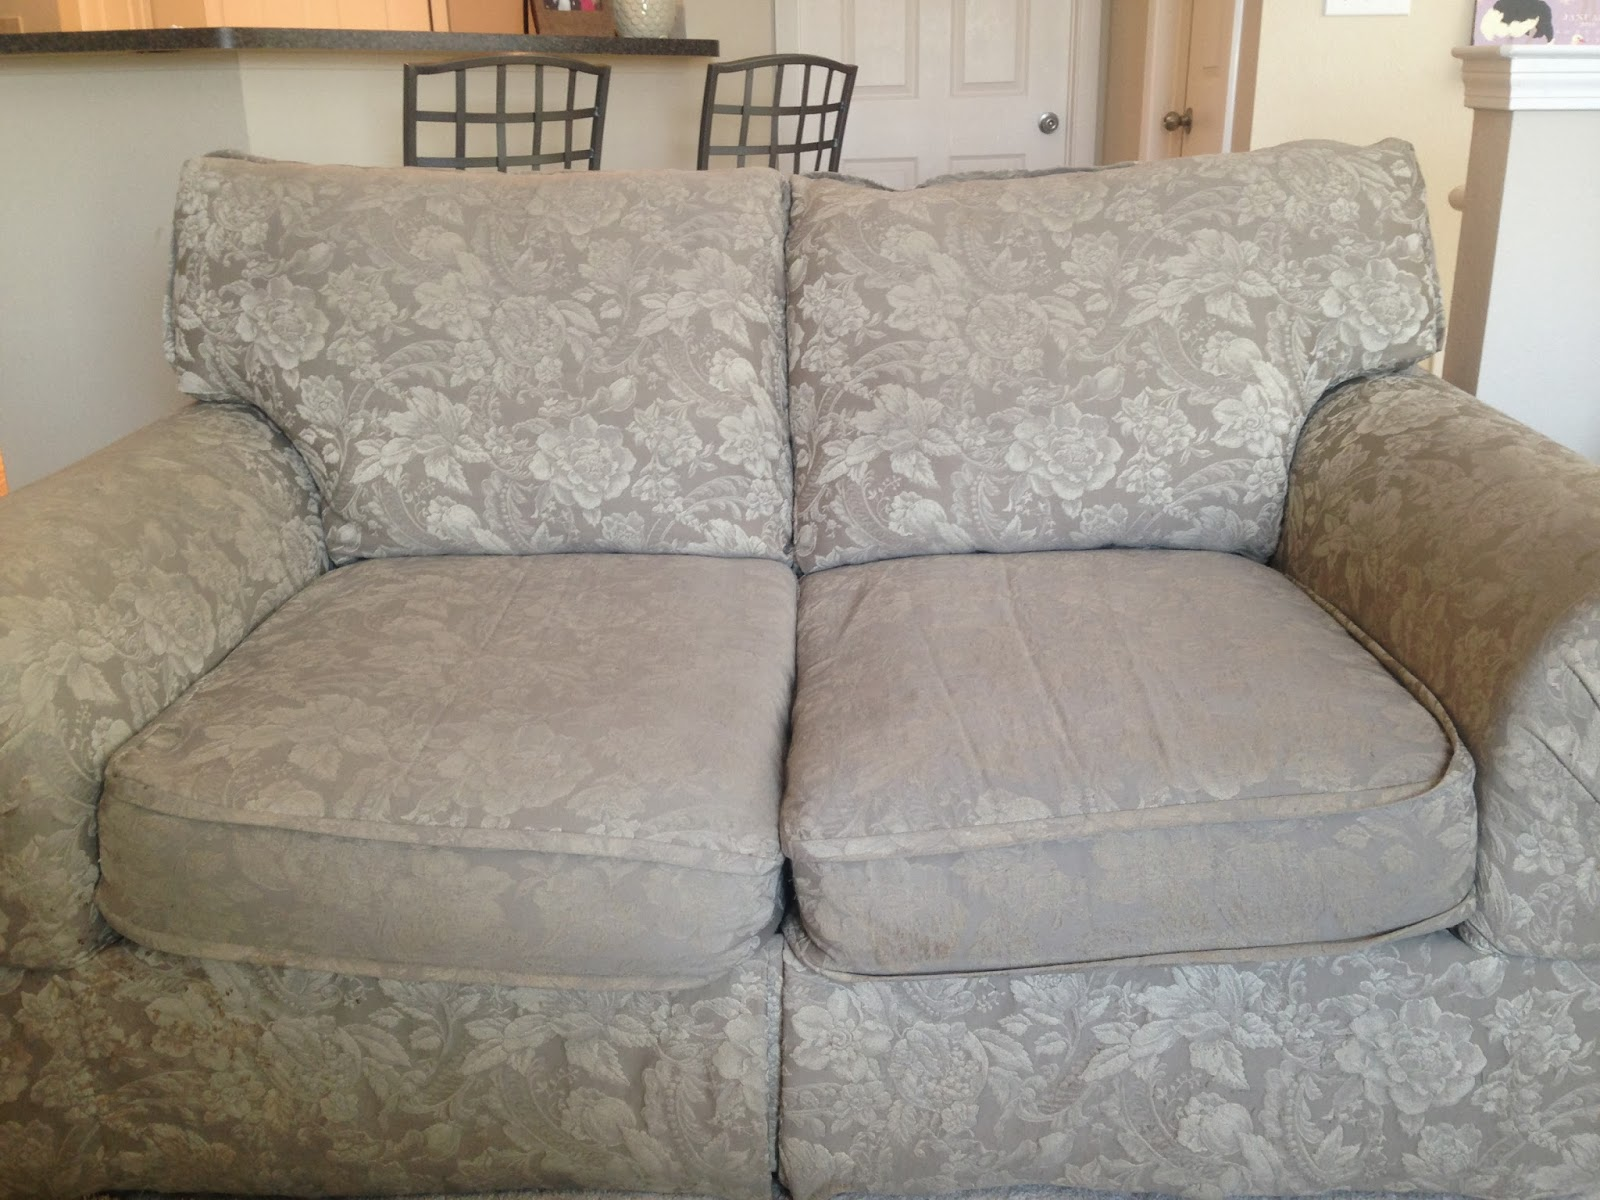 sagging sofa dfs corner bed fabric project randi easy fix for couch back cushions